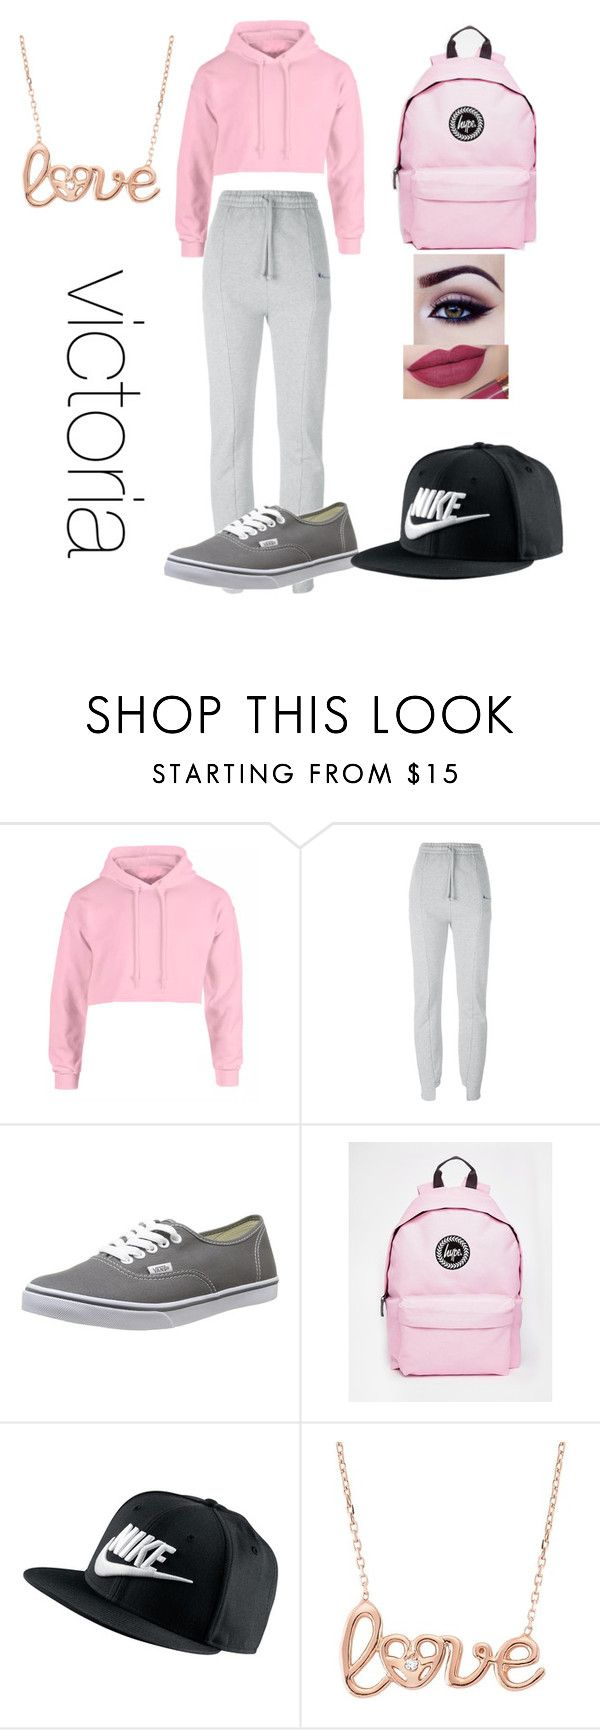 """wattpad story outfit"" by lauraederveen on Polyvore featuring Vetements, Vans, Hype, NIKE, Nicki Minaj, women's clothing, women, female, woman and misses"